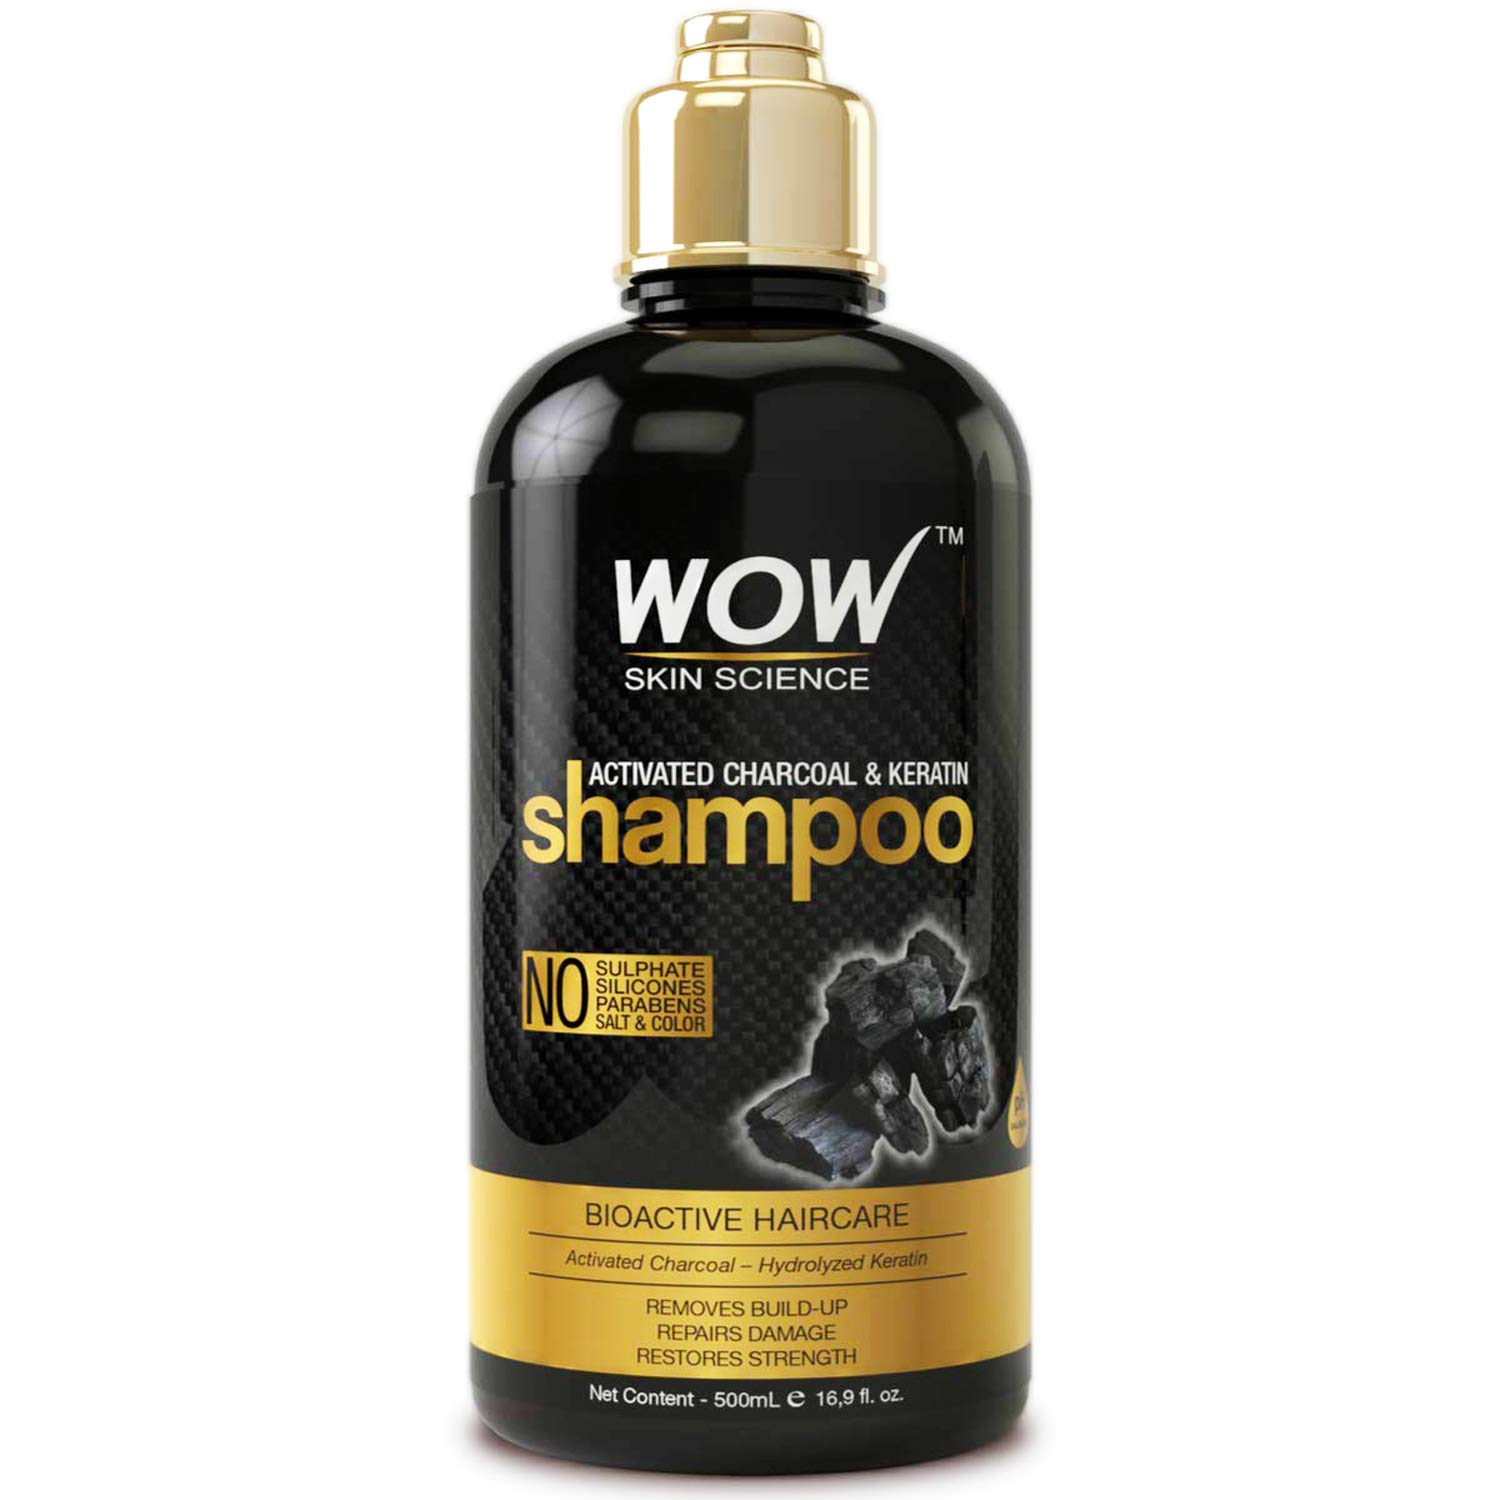 WOW Activated Charcoal & Keratin Shampoo - Remove Dirt, Filth - Restore Dry, Damaged Hair & Scalp For Soft, Glossy, Shiny Hair- Sulfate and Paraben Free - All Hair Types, Adults & Children - 500 mL by BUYWOW